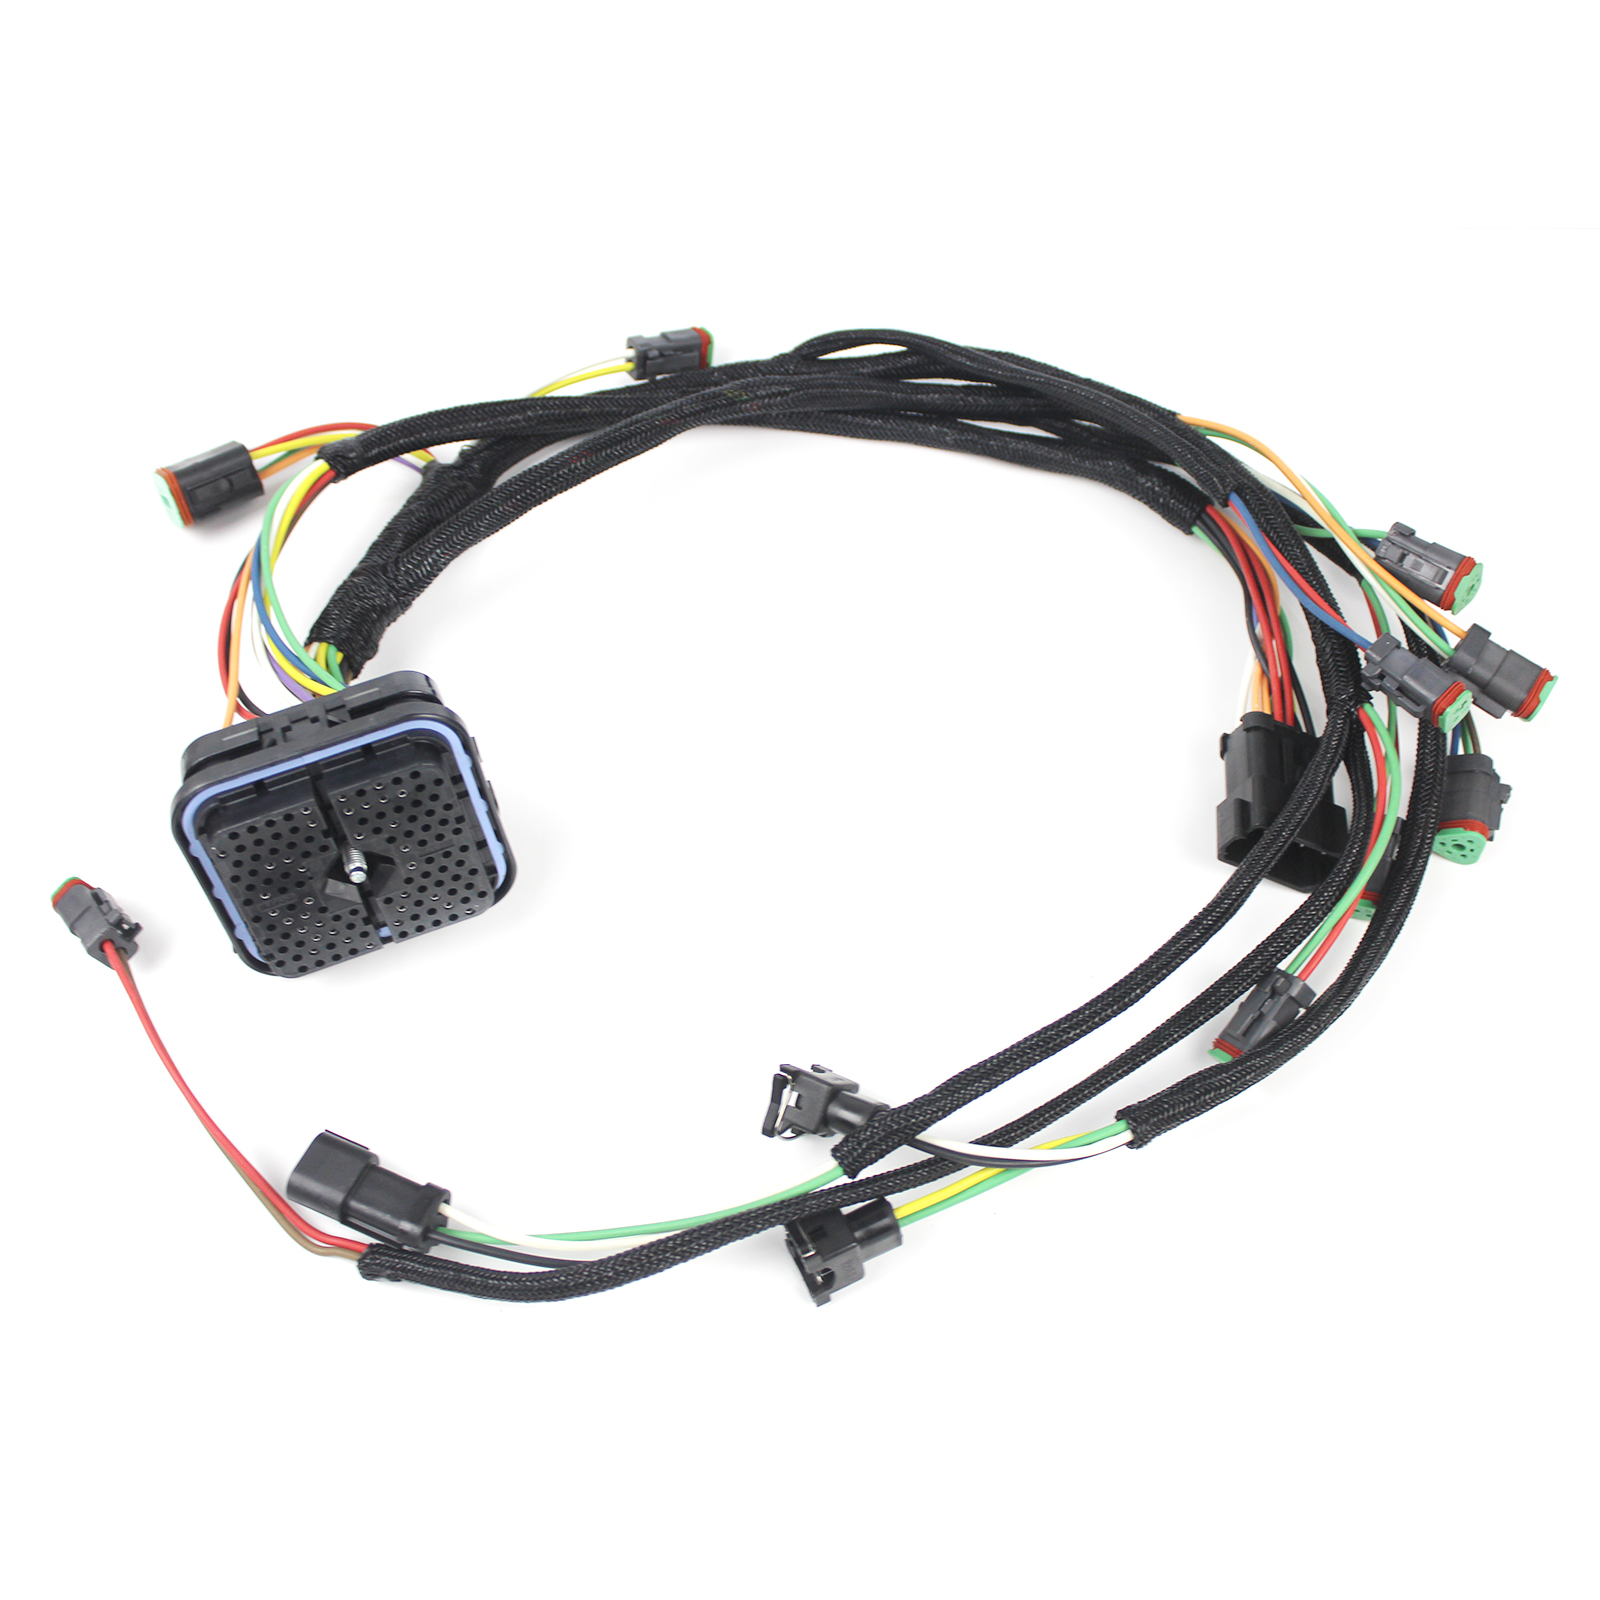 Wiring Harness 198-2713 1982713 Fits 325D E325D Engine C7 With 1 Year Warranty